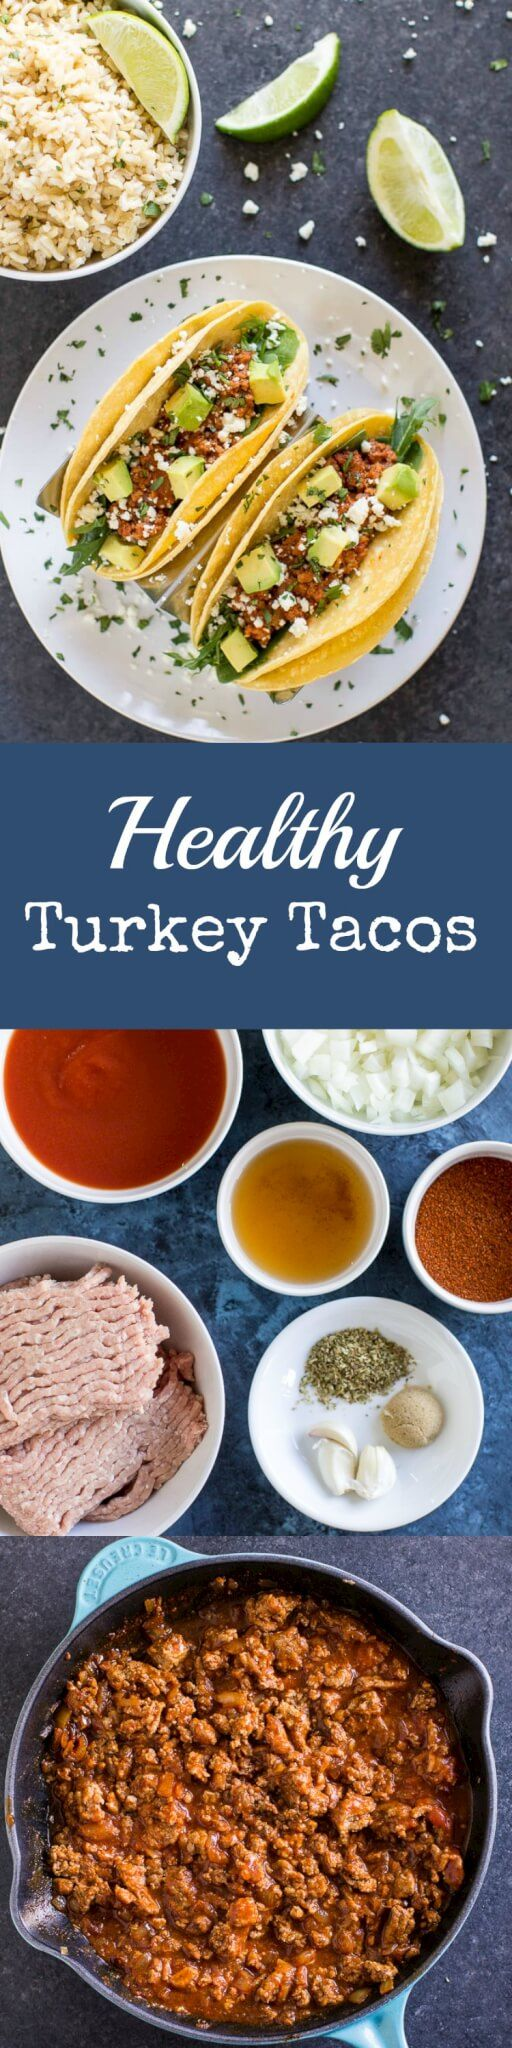 I make these healthy Turkey Tacos every single week! They are so delicious and flavorful, everyone loves them, and they're ready in 15 minutes.